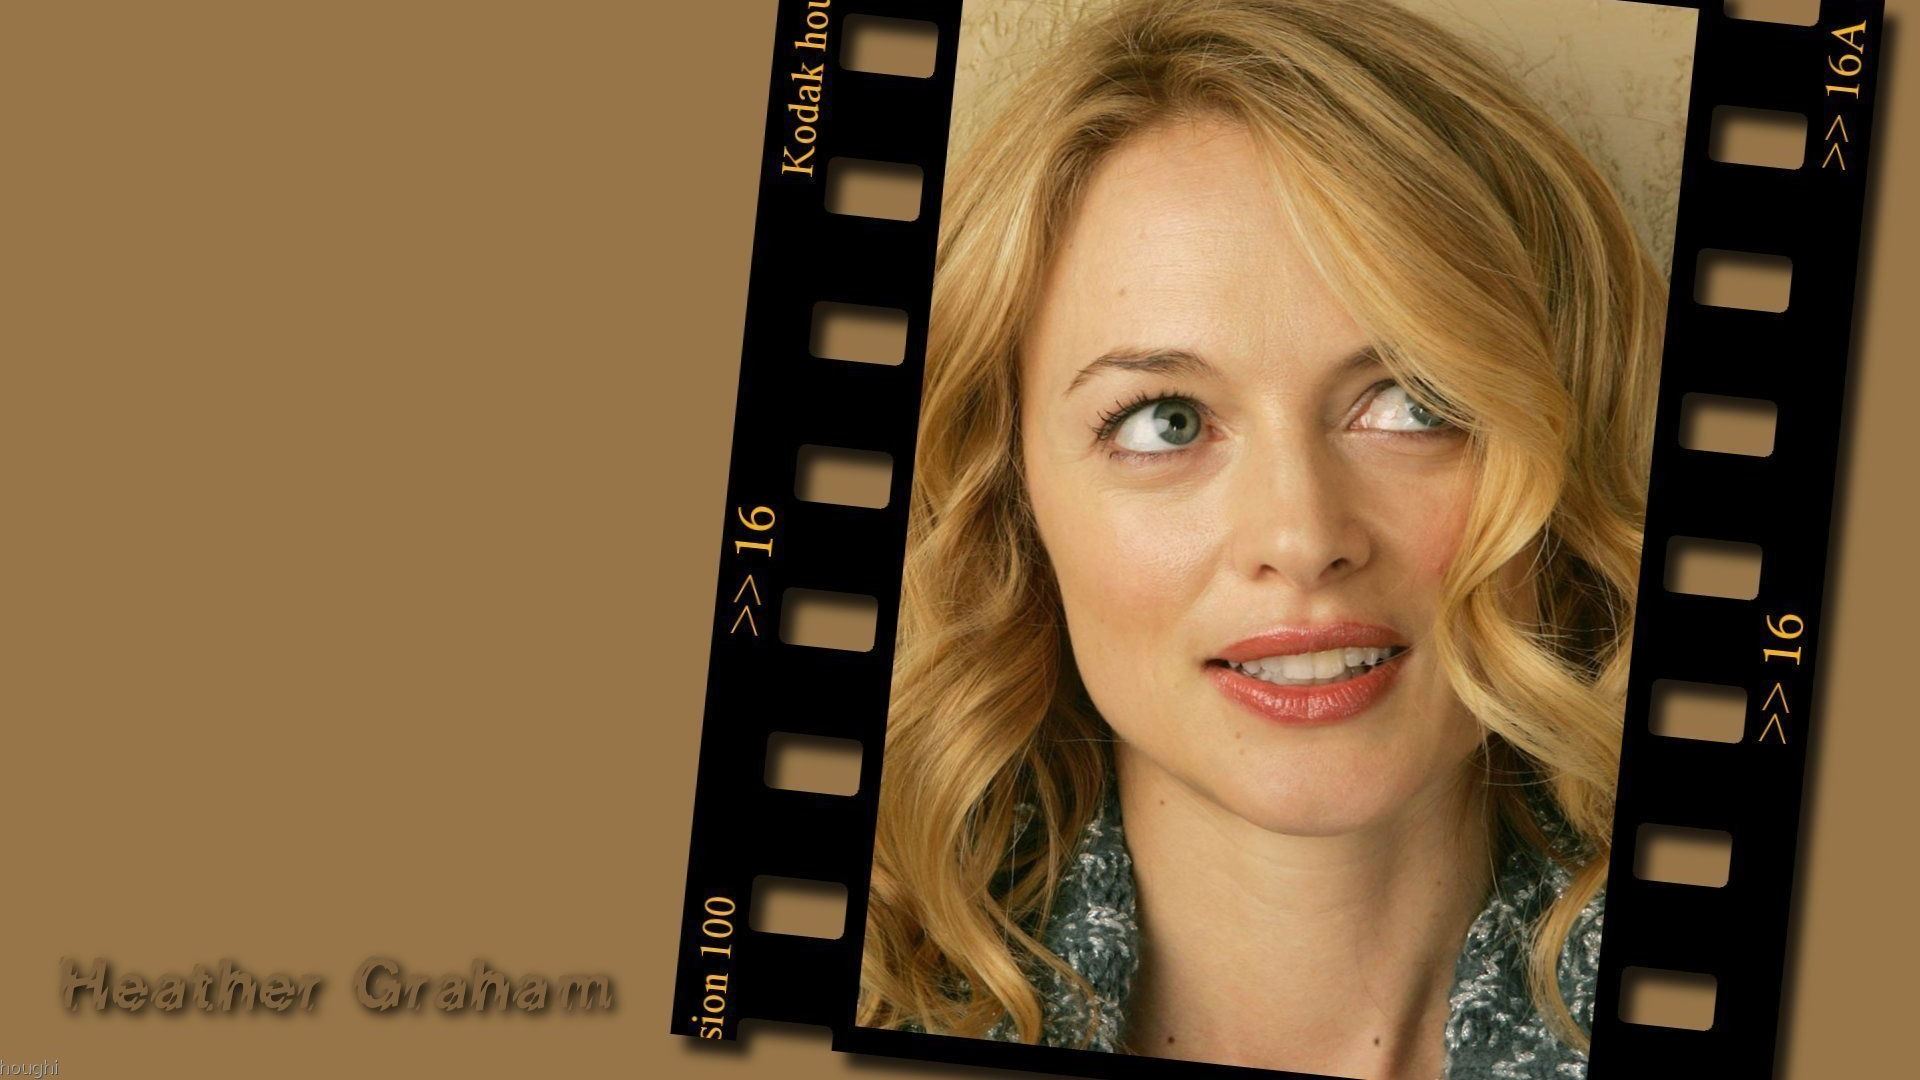 Heather Graham #005 - 1920x1080 Wallpapers Pictures Photos Images